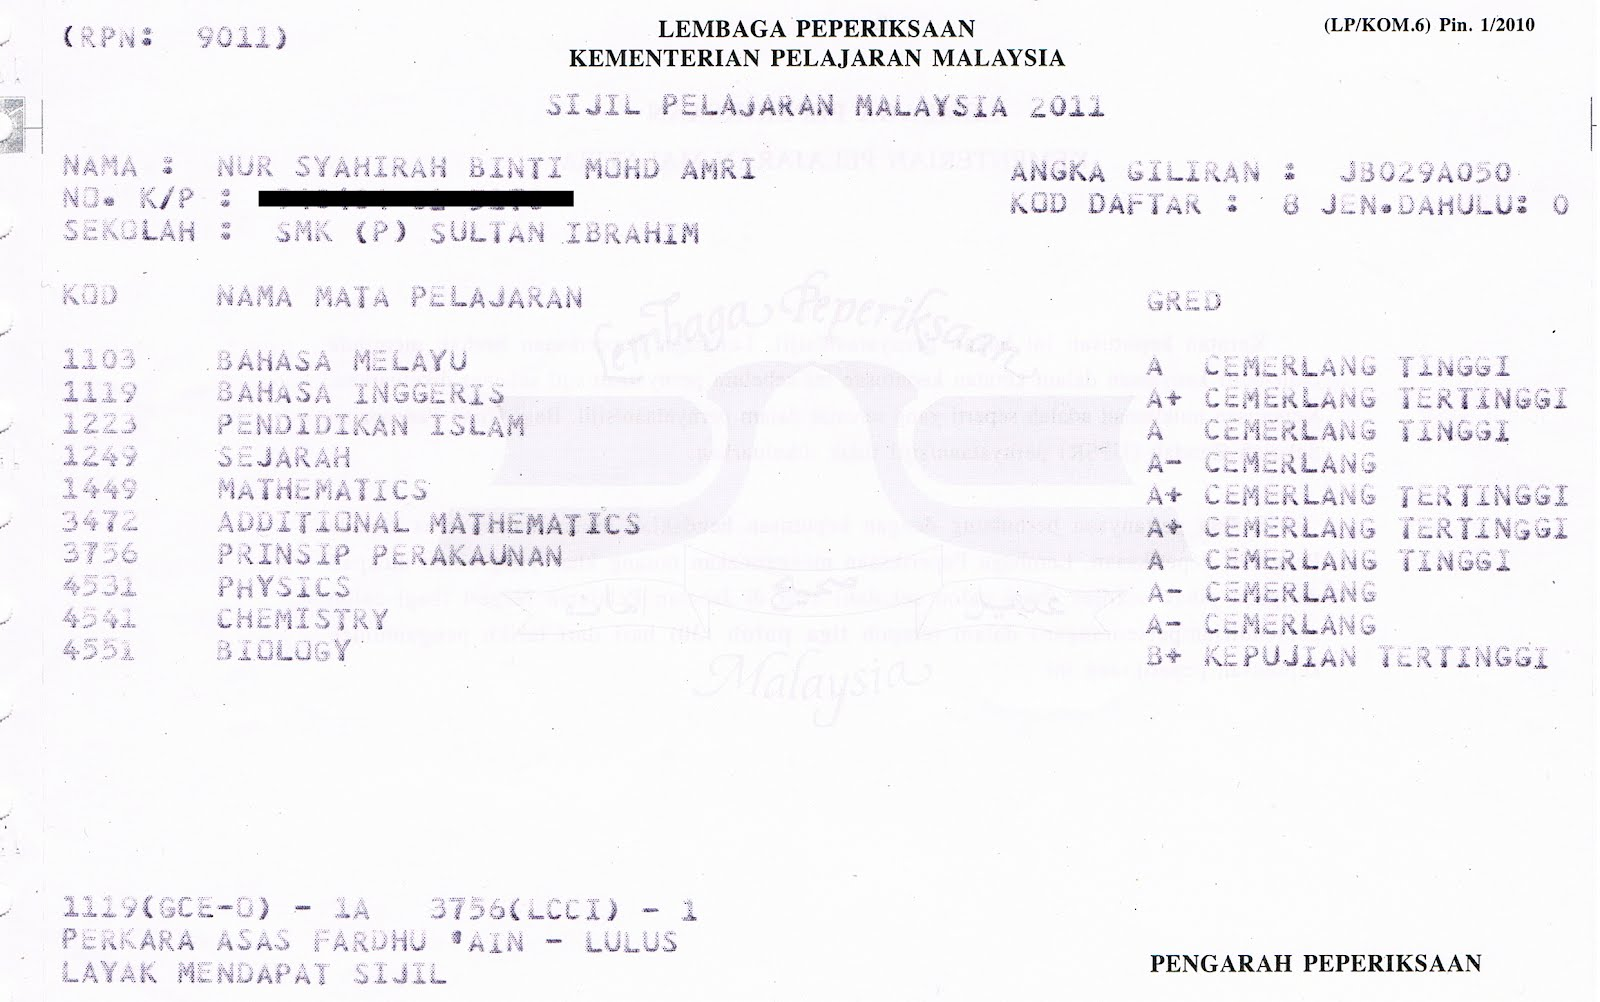 spm 2012 english paper 1 directed writing English 1119/1 english 1119/2 credited by sir marzuqi m salleh professional master in education english perfect score spm 2014 module 1 written by: cikgu marzuqi mohd salleh msc ed usm edited by cikgu suhaili, b menagement (hons) ed usm paper 1 directed writing [ 35 marks].